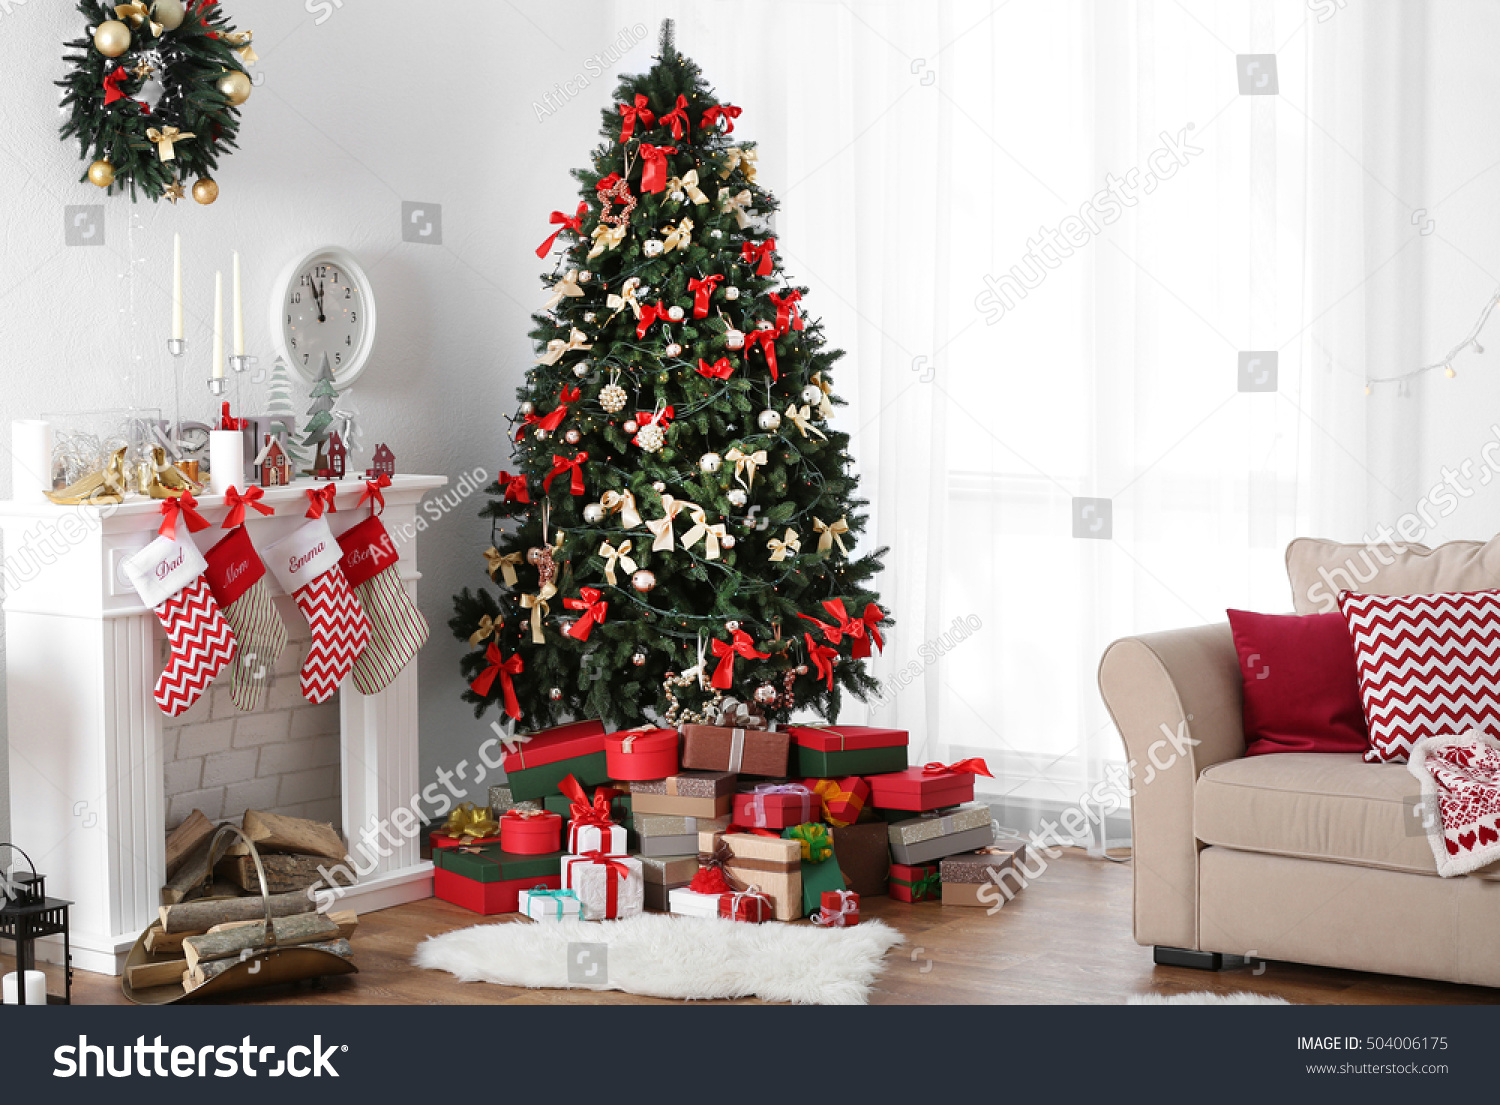 Christmas Trees Photos Decorated